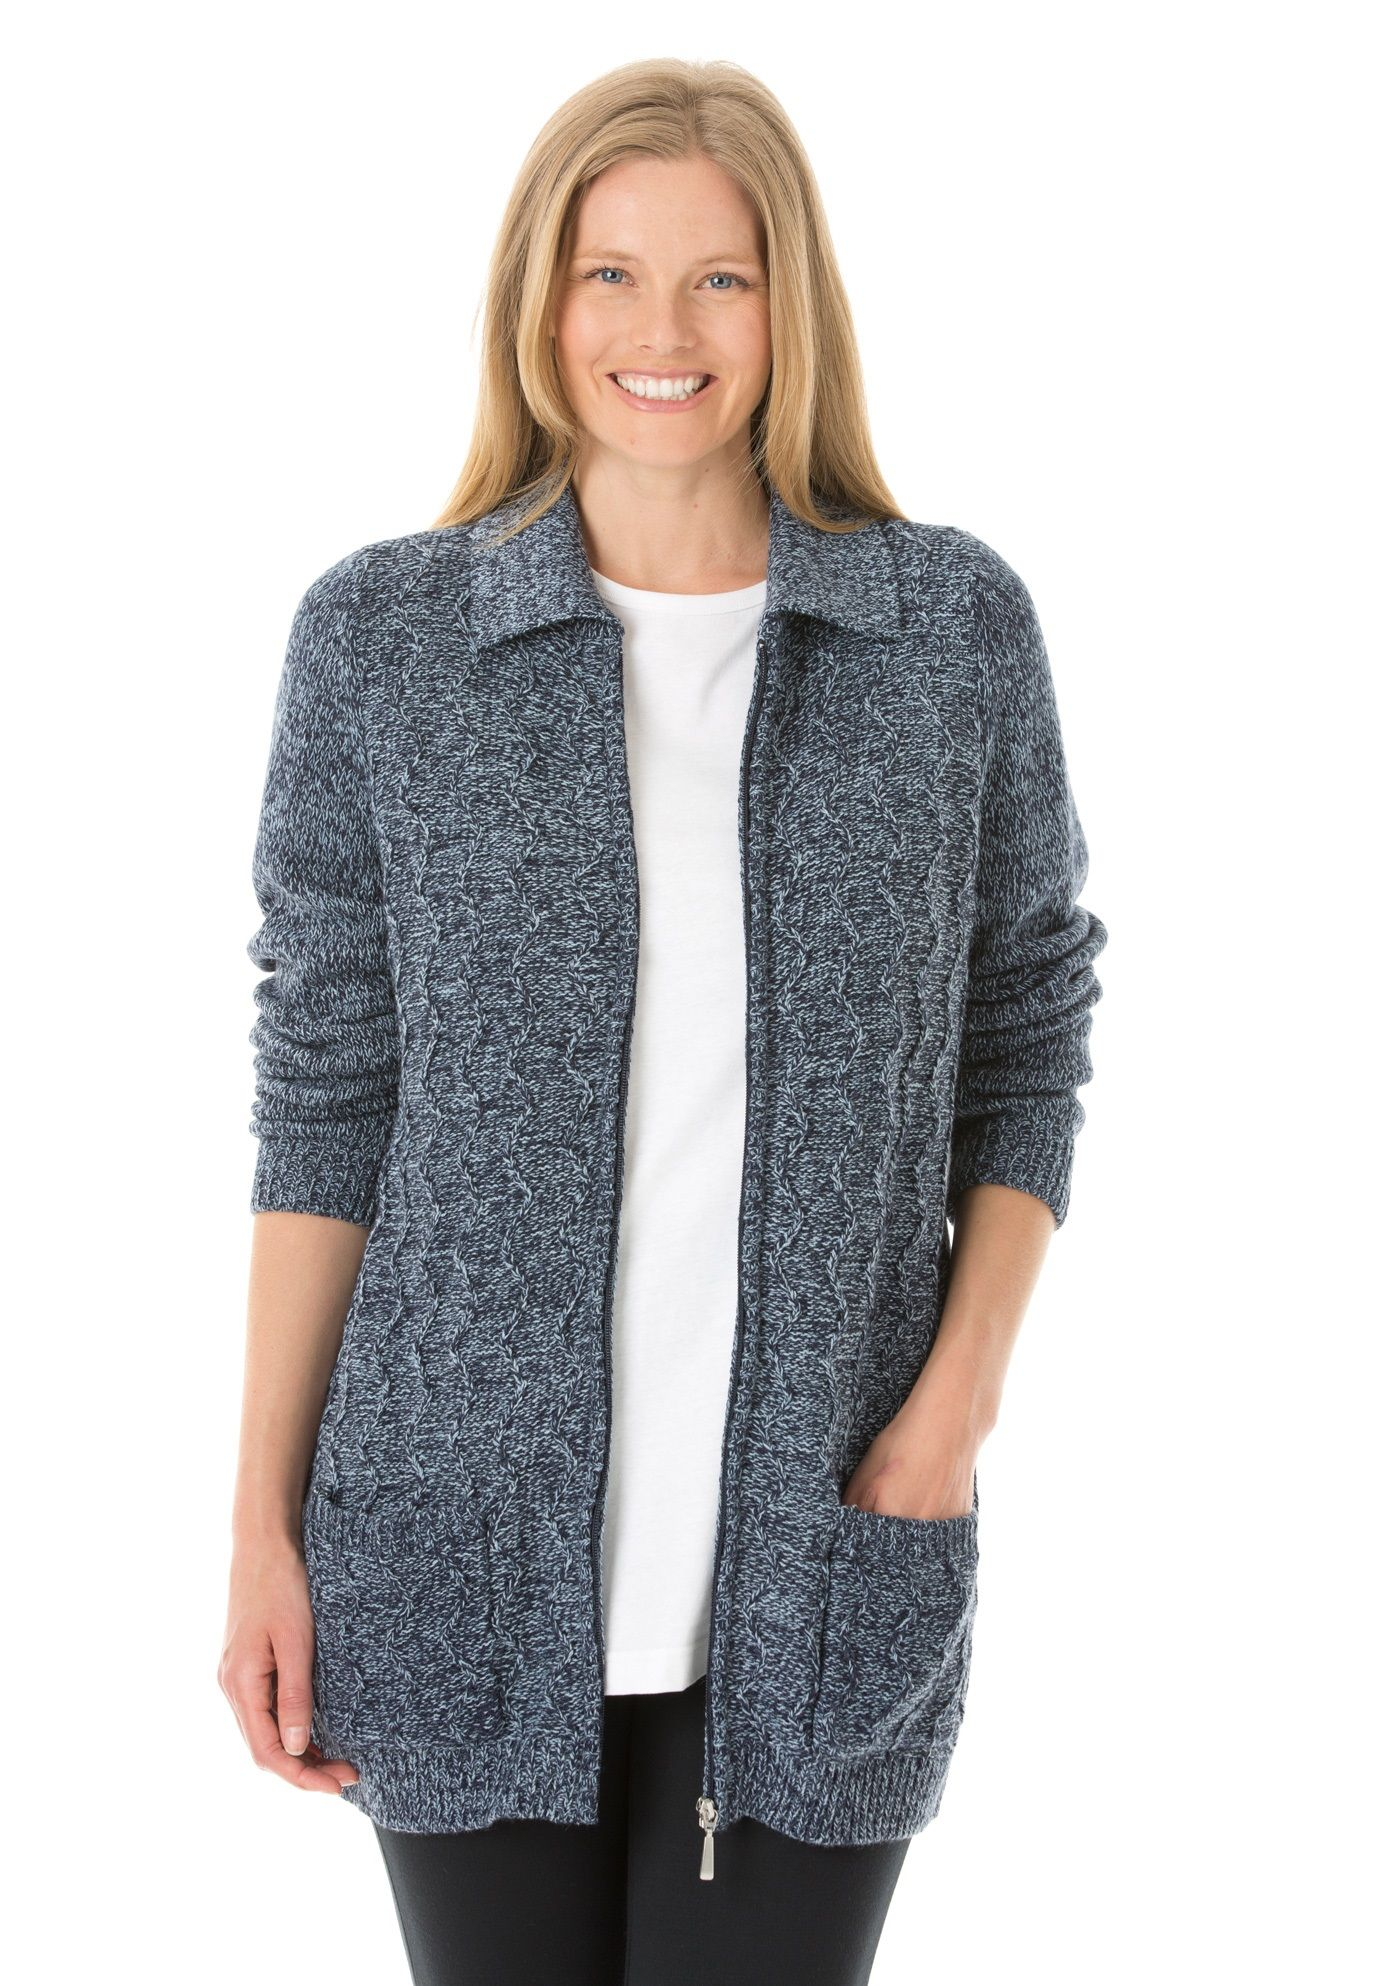 3b38db5f7bd This cozy plus size zip cable knit cardigan has a great marled look ...